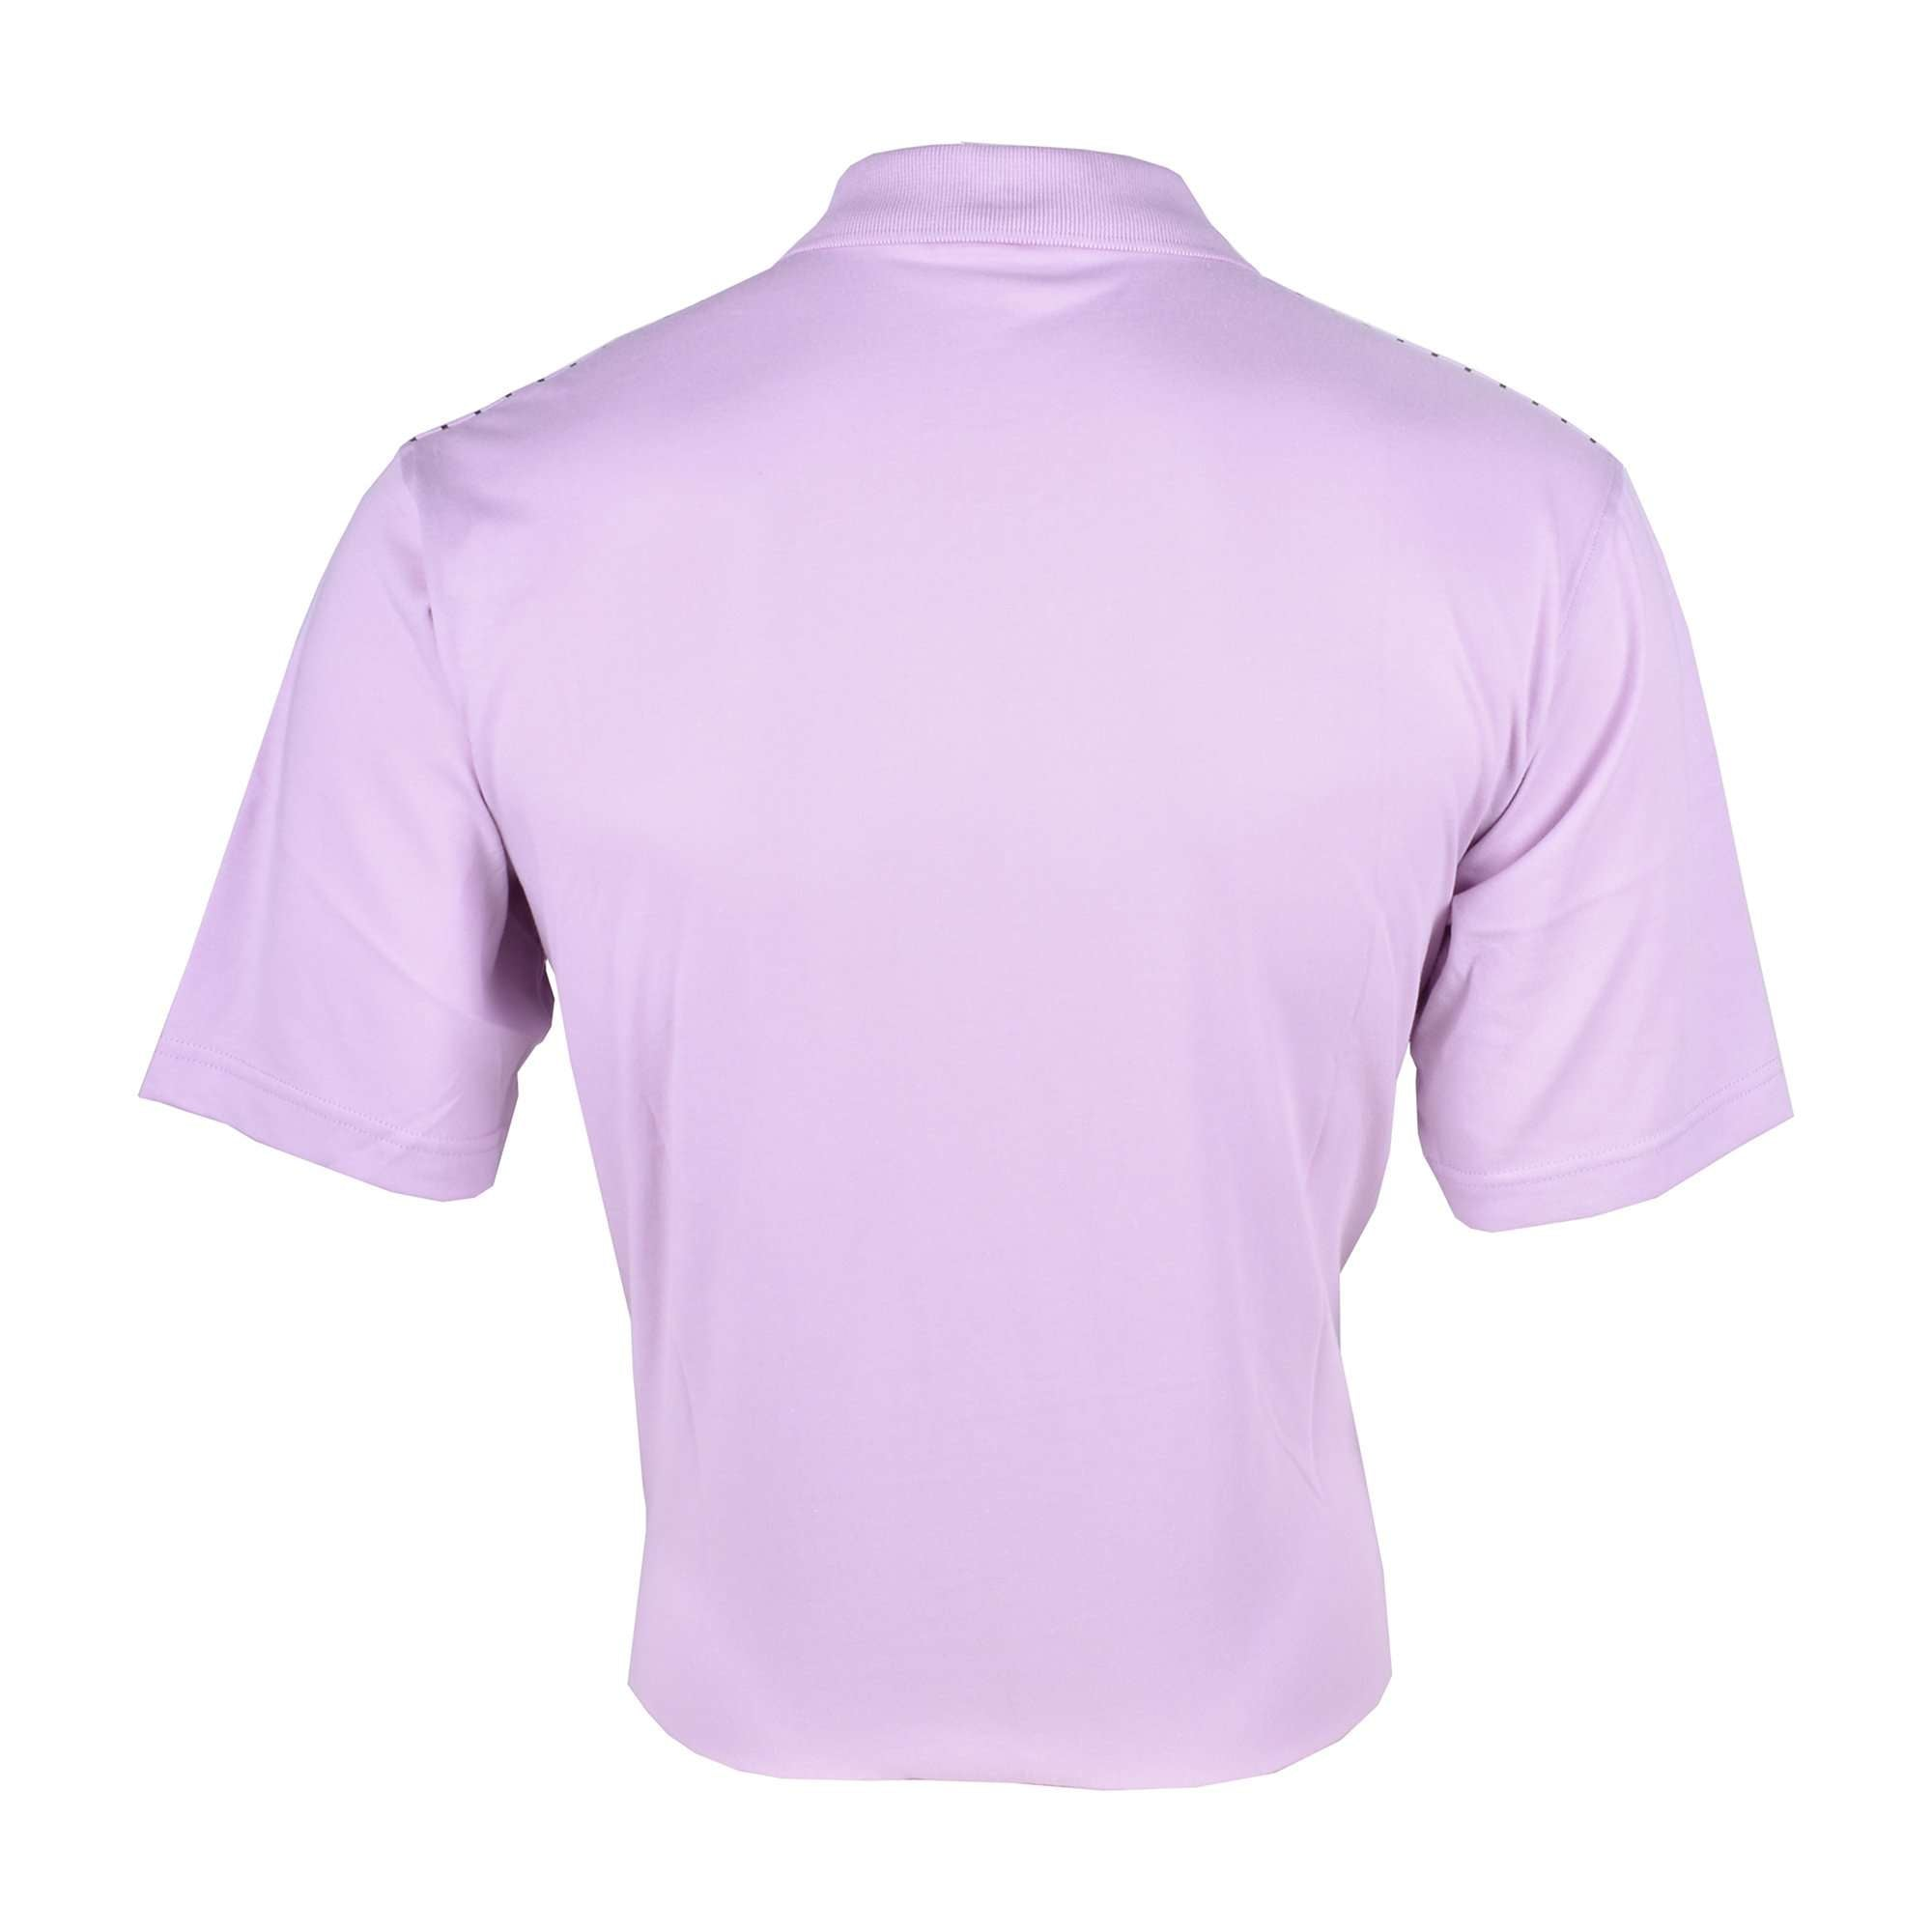 John Master Casual Relax Short Sleeve Polo Tee - Purple 8128006-U5 : Buy John Master online at CMG.MY